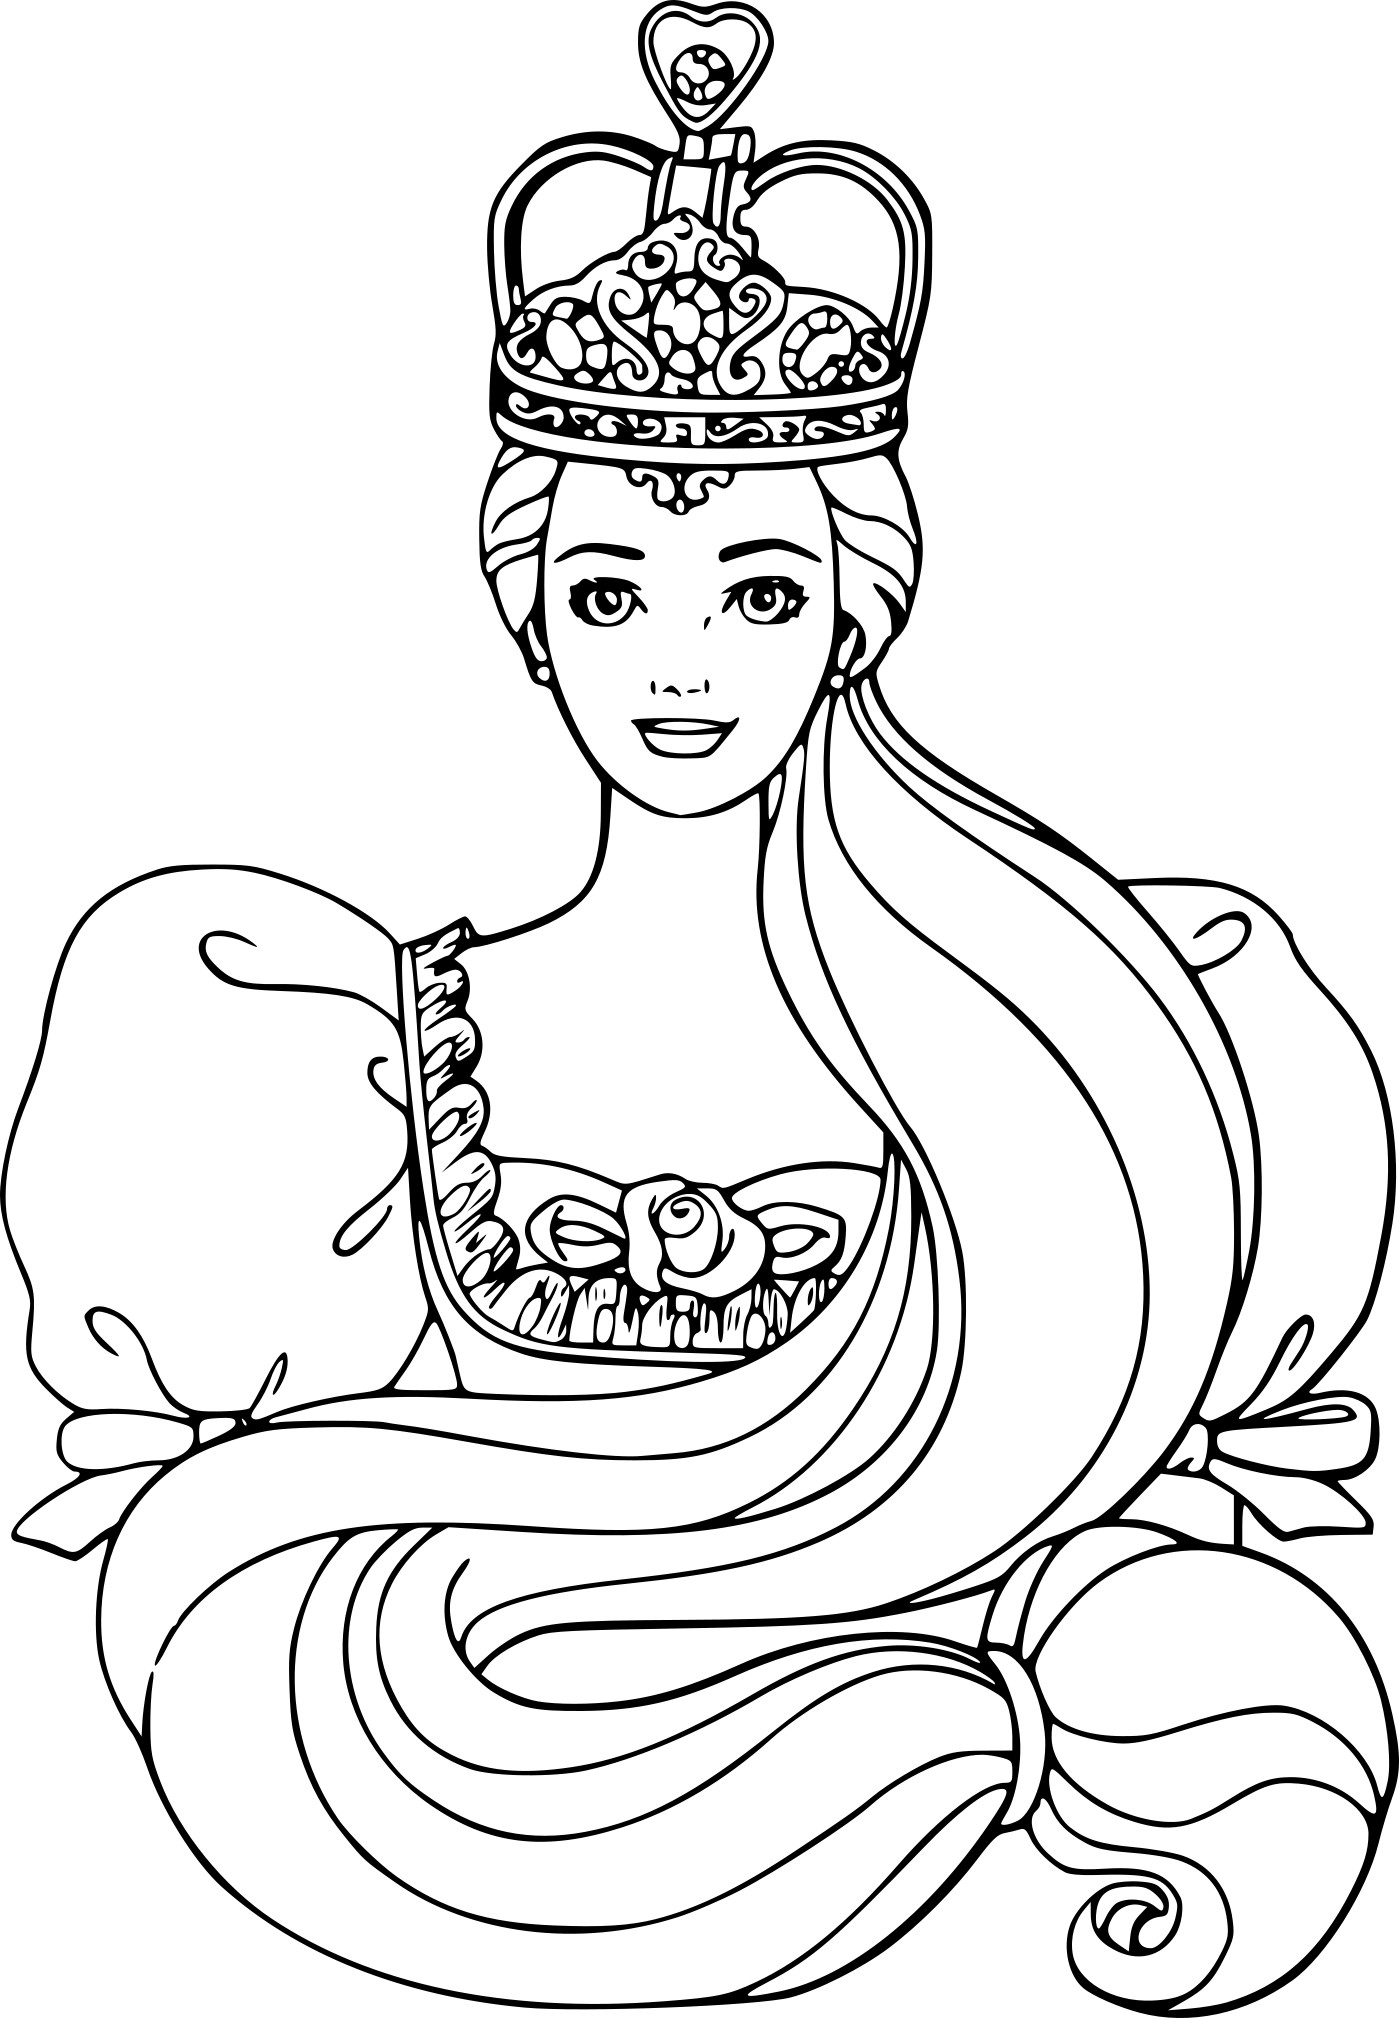 Coloriage barbie princesse disney imprimer gratuit - Dessin de barbie facile ...